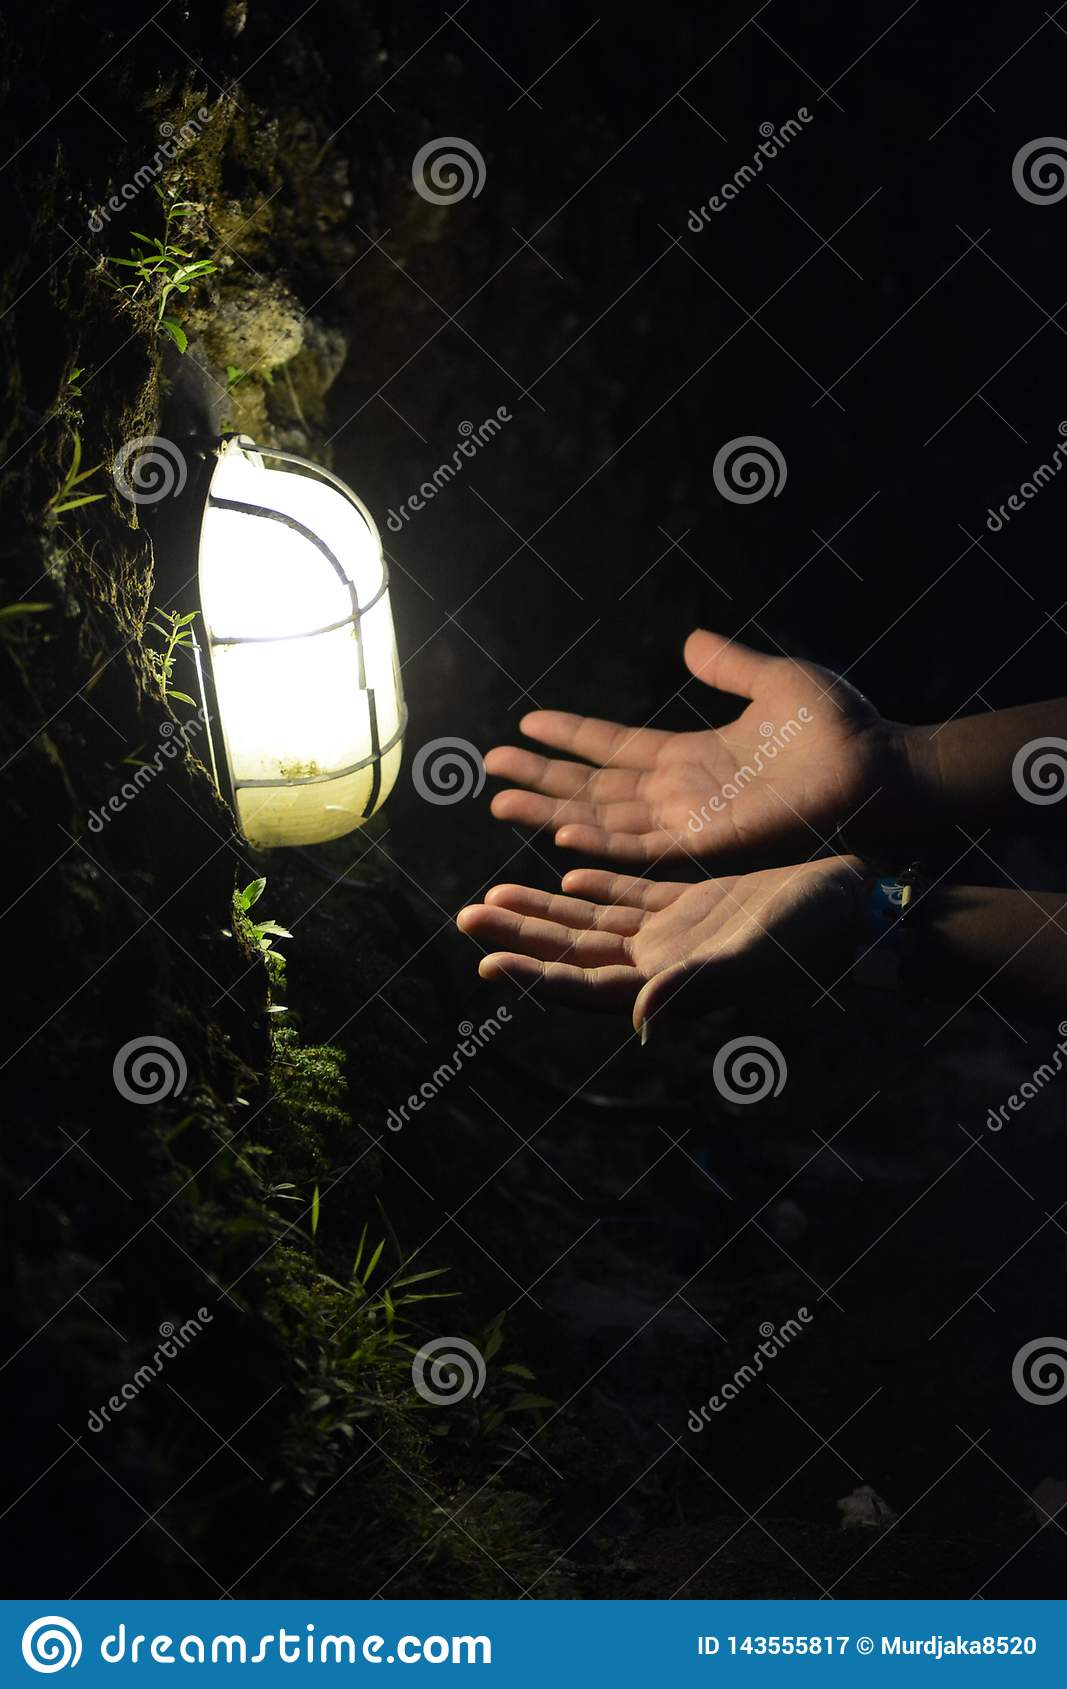 Like the position of the hands praying under the lamp